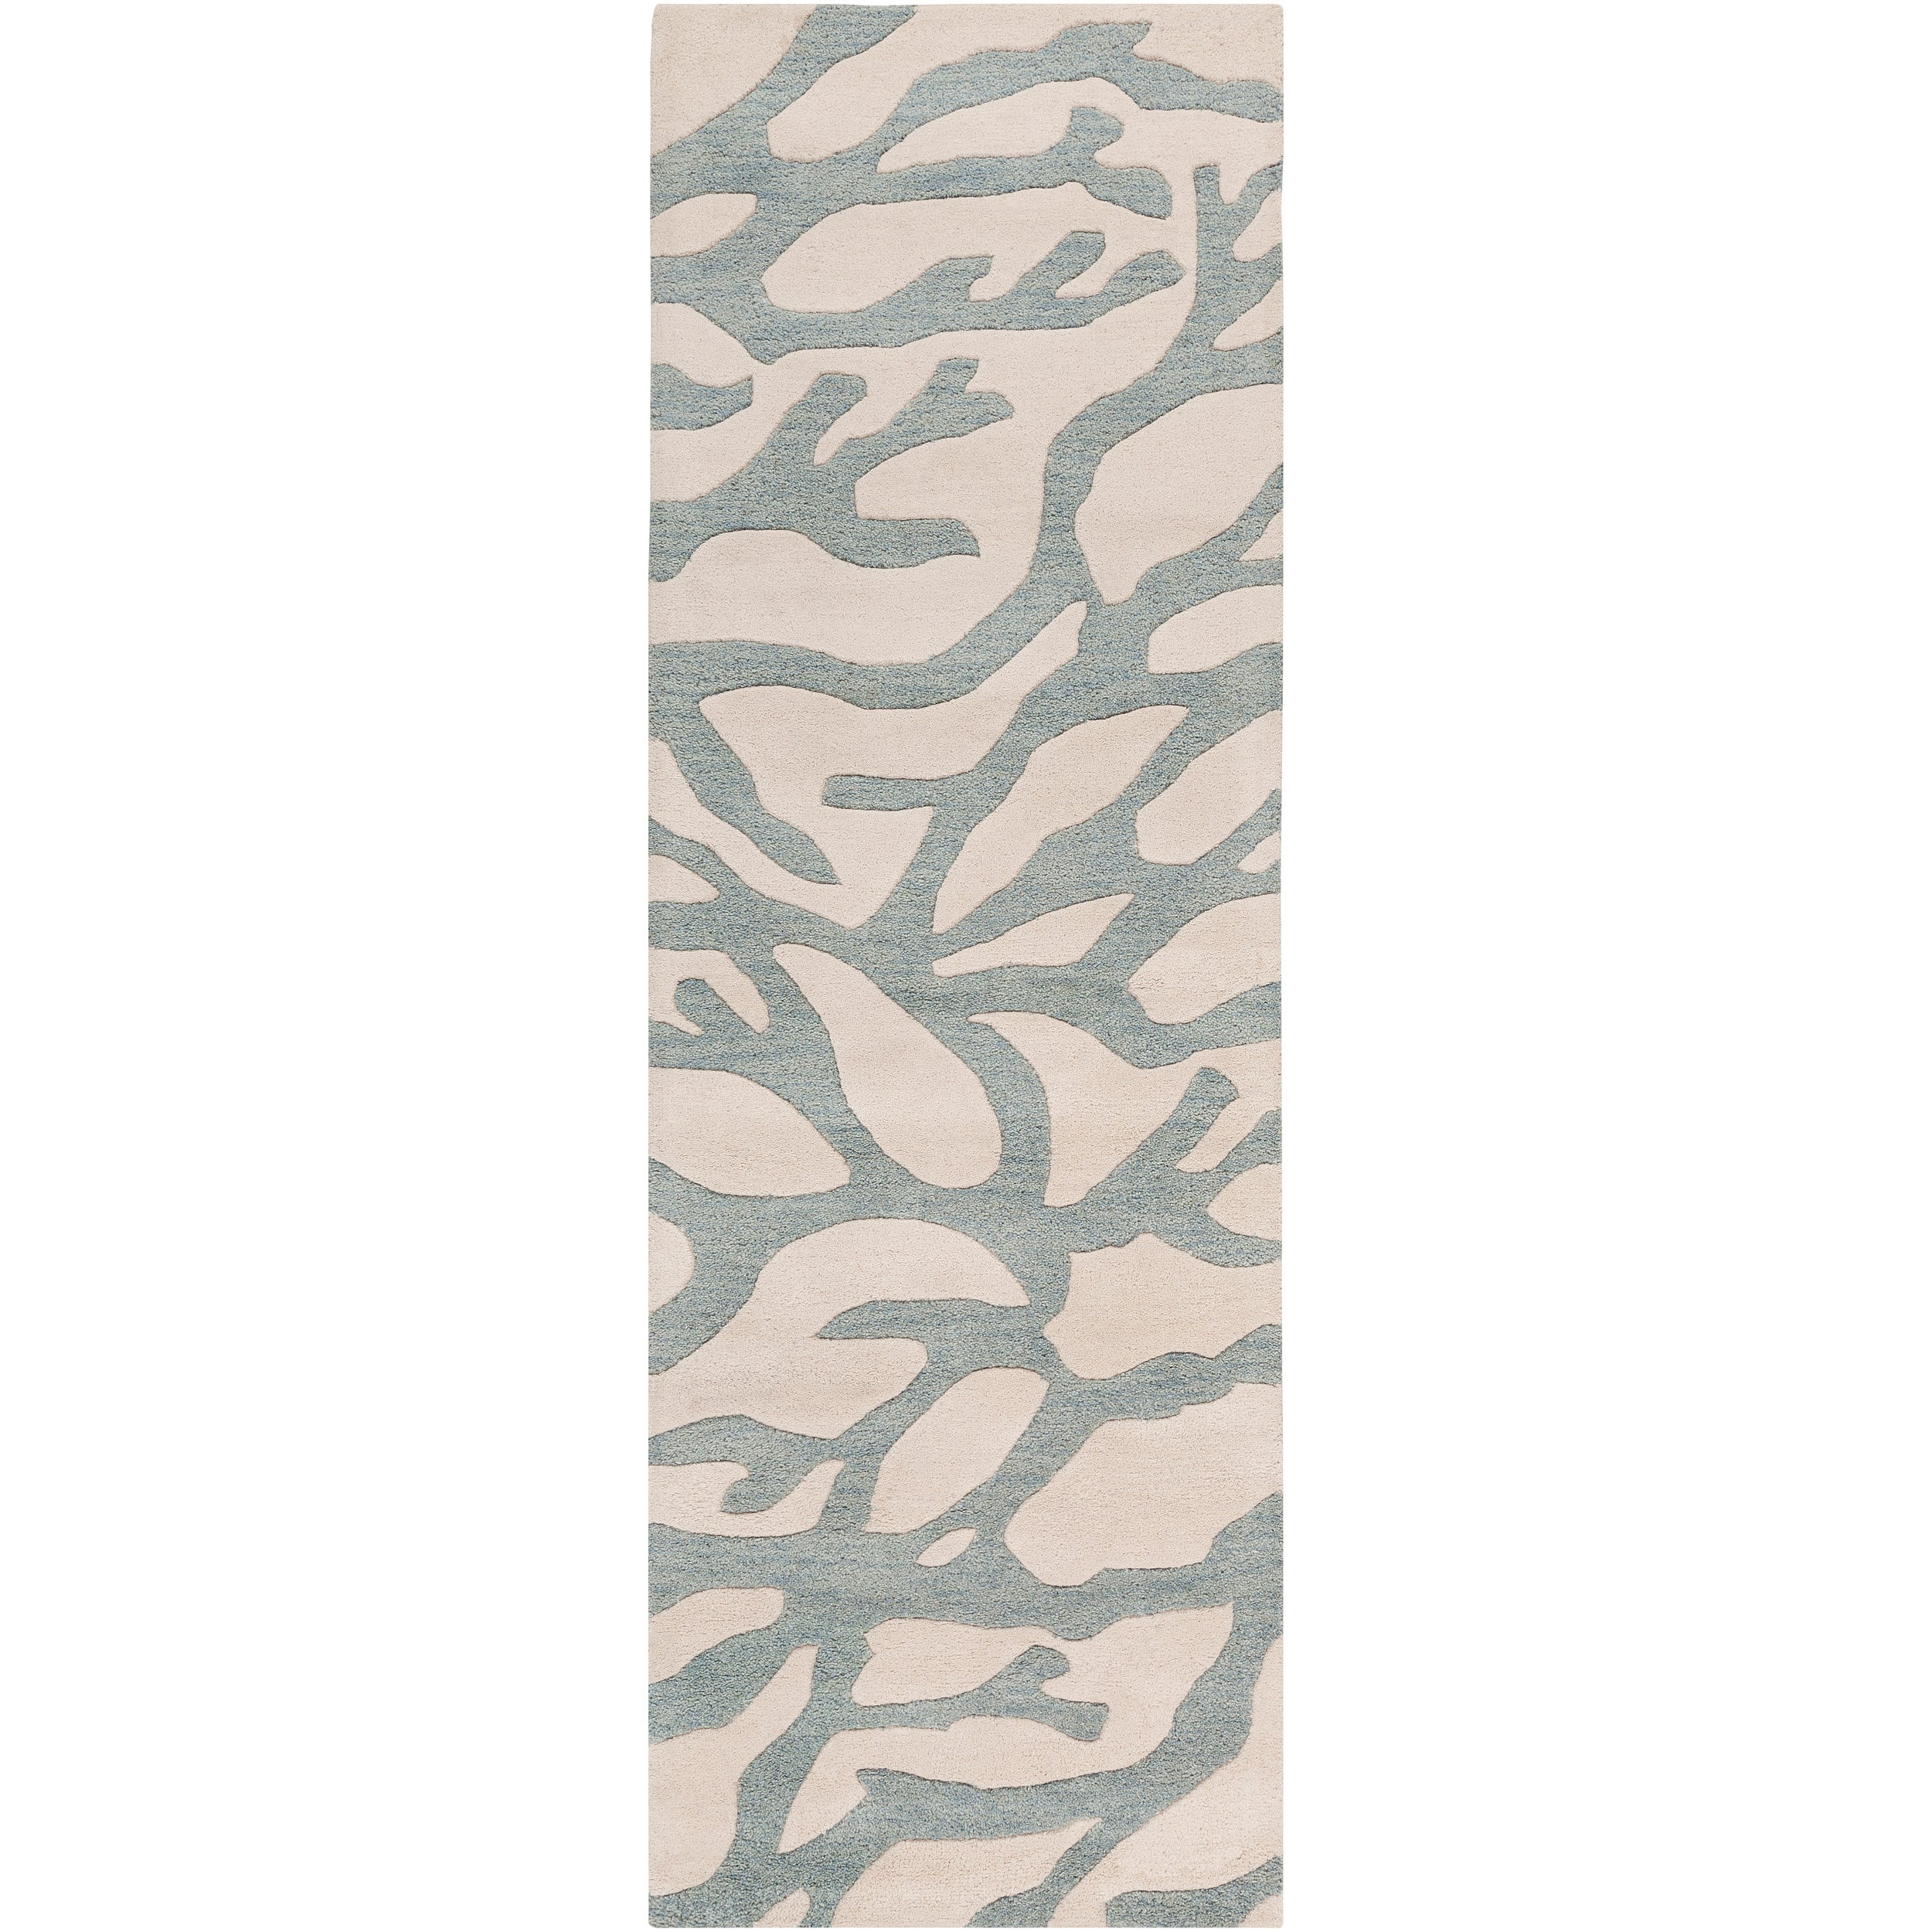 Hand-Tufted Bacelot Bay Blue Beach Inspired Abstract Wool Rug (2'6 x 8')